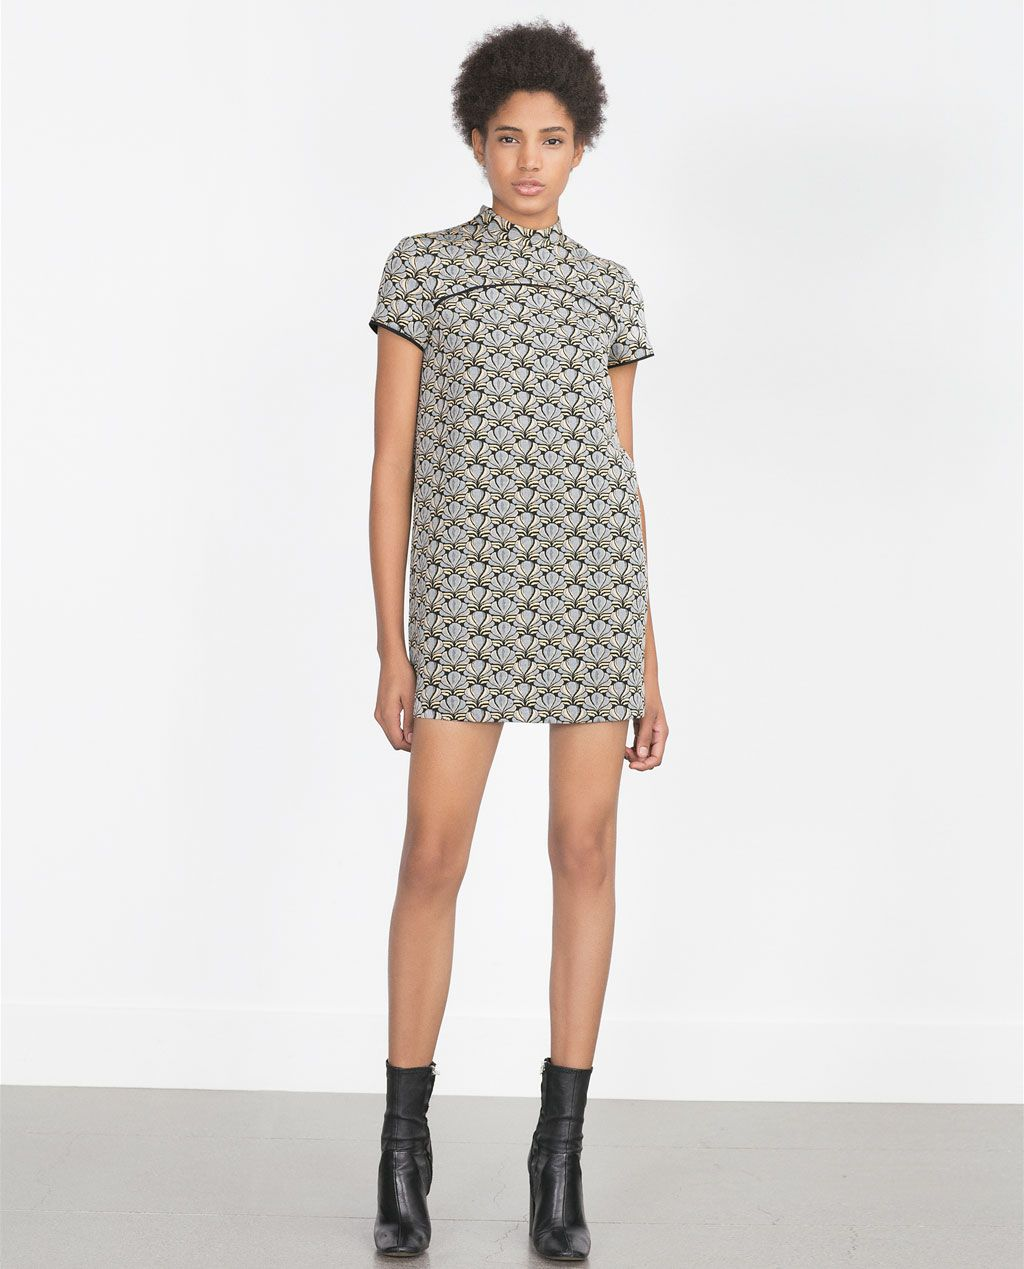 dab6b29e6ce8 Image 1 of JACQUARD DRESS from Zara | H. | Dresses, Jacquard dress ...